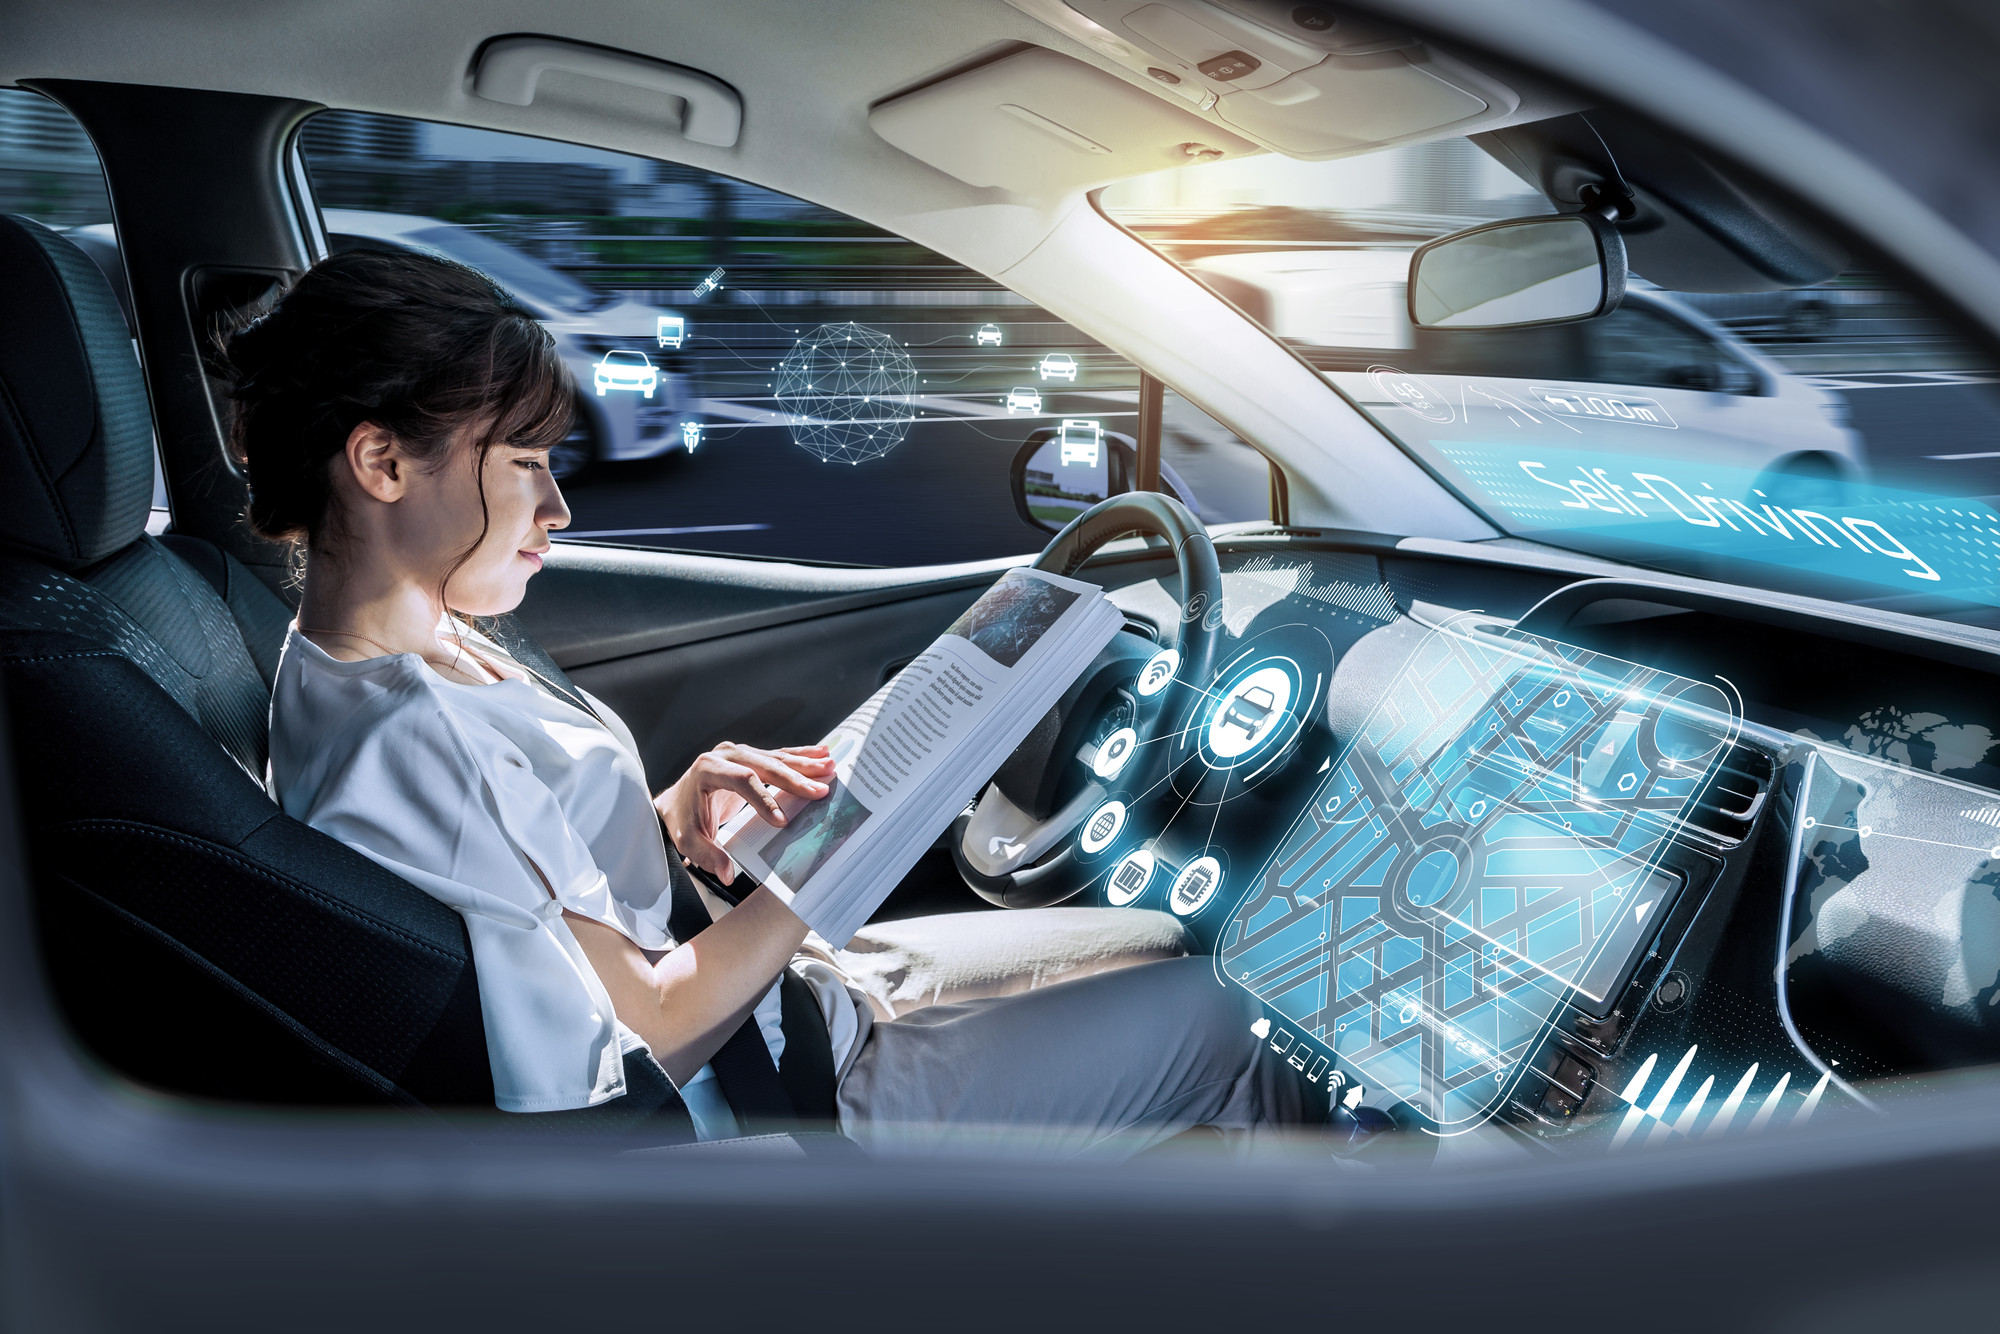 Main visual : What to expect in the automotive industry in 2019